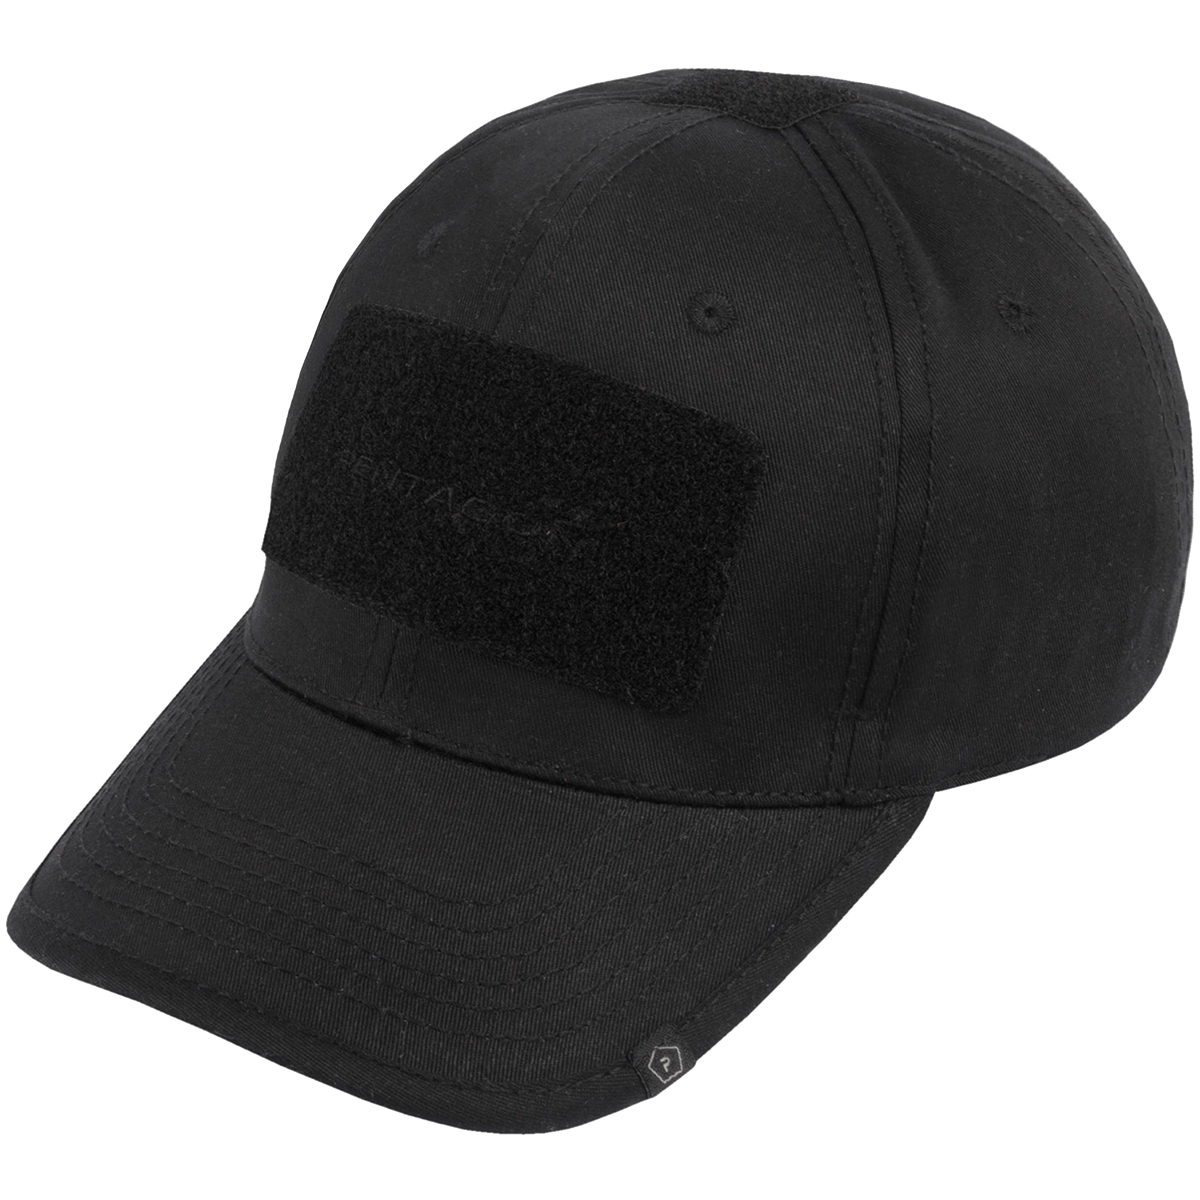 Pentagon Tactical 2 0 Bb Cap Twill Police Security Army